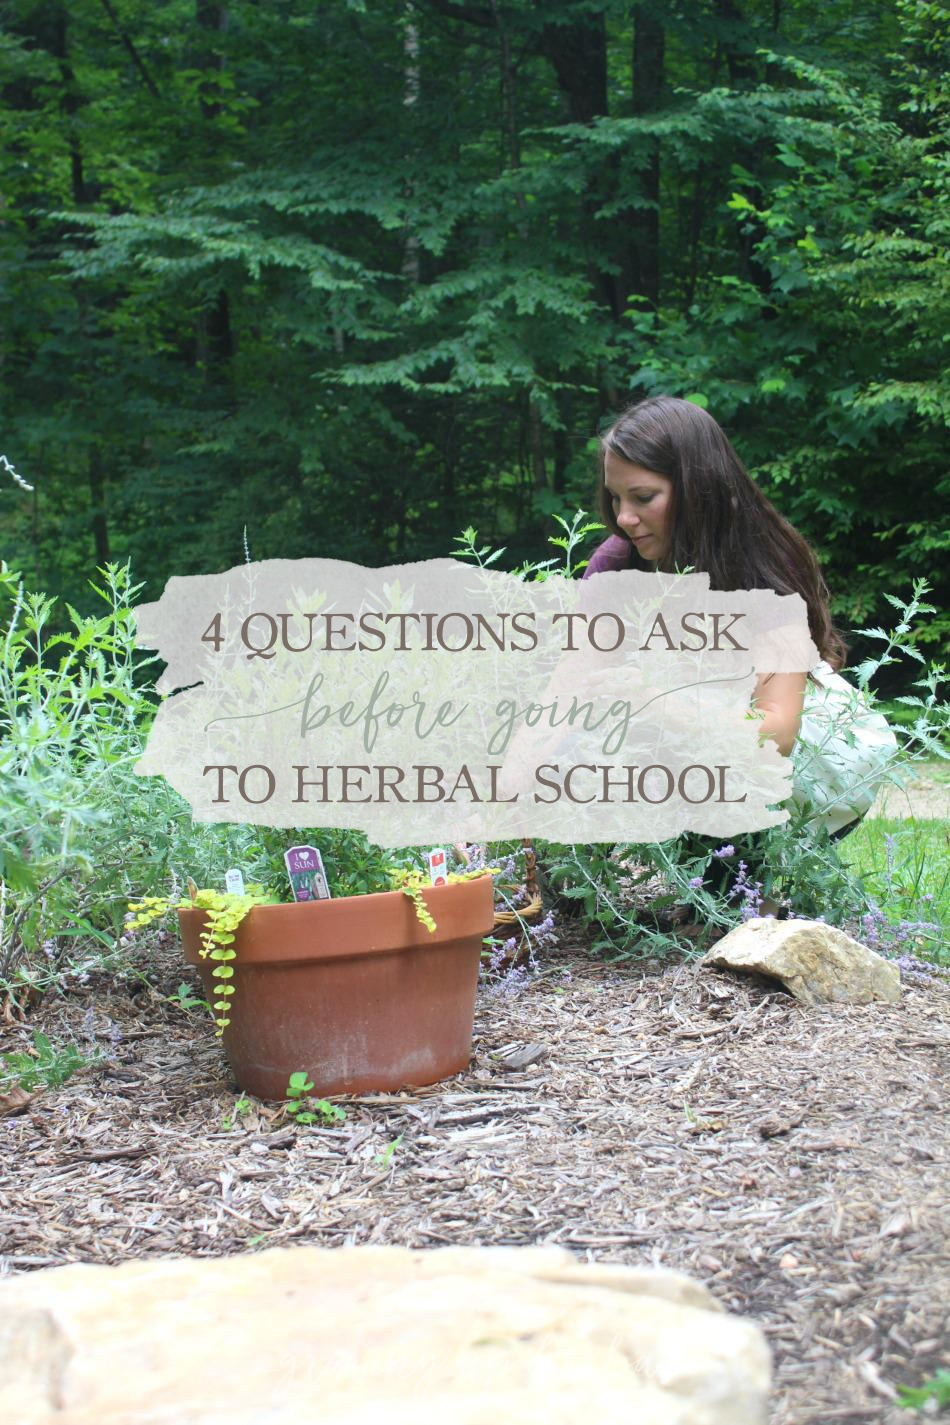 4 Questions To Ask Before Going To Herbal School | Growing Up Herbal | Thinking about going to herbal school, but you're not quite sure if it's for you? Ask yourself these questions first!